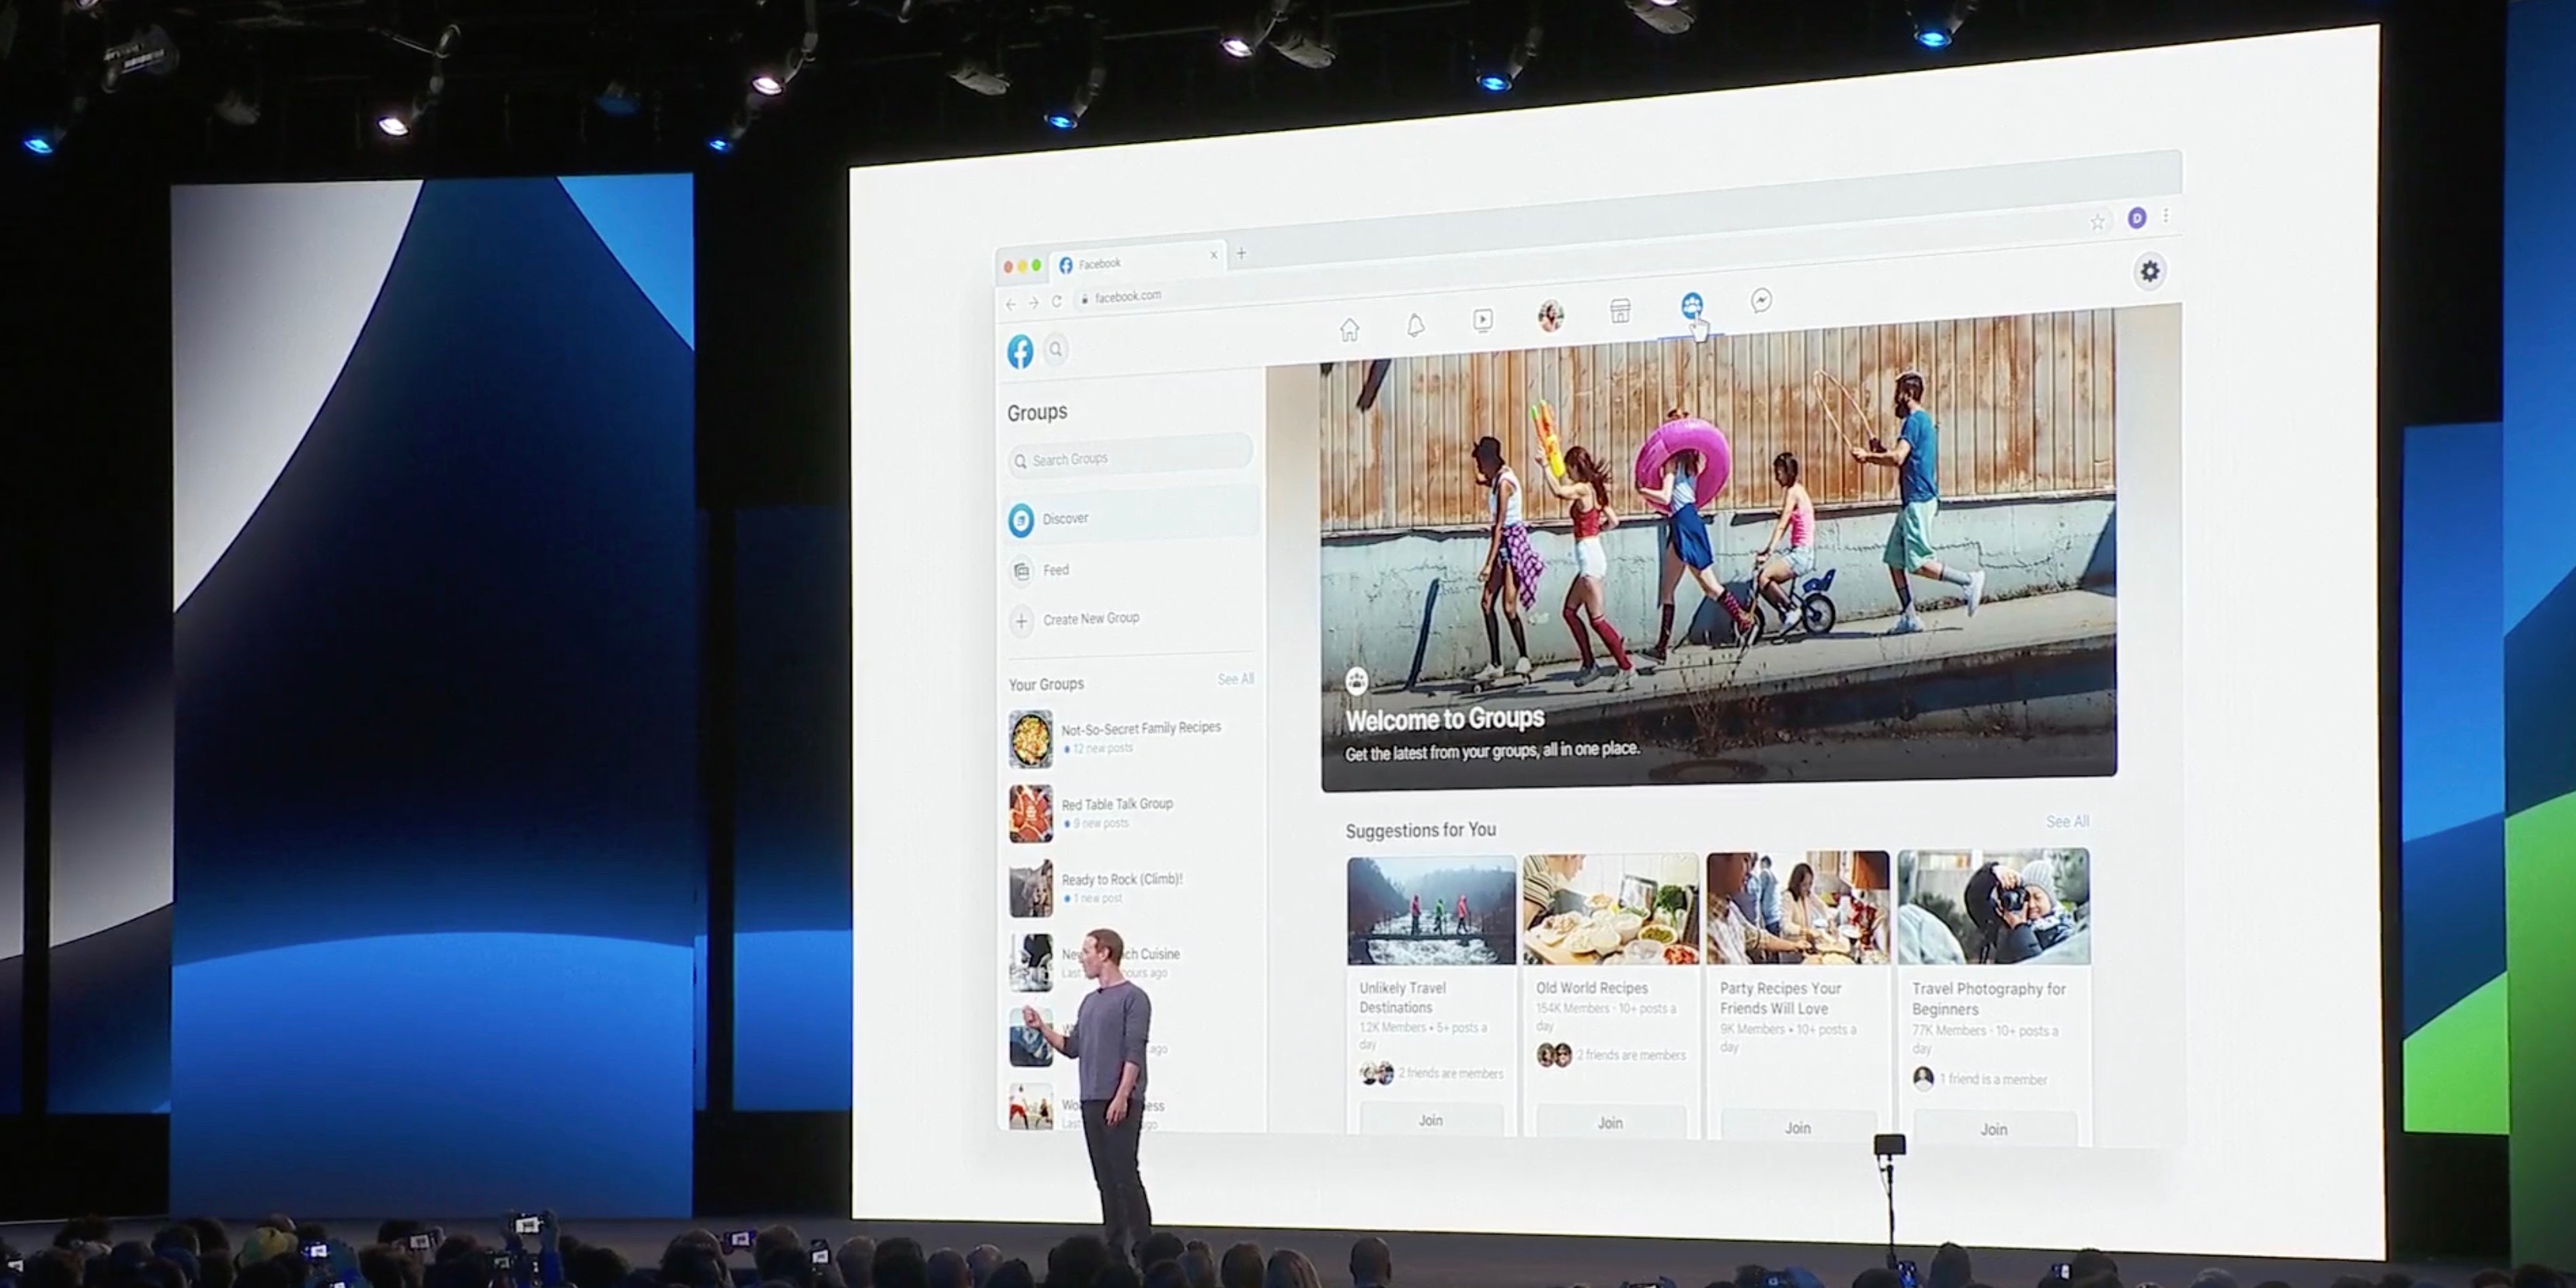 Facebook Shows Off Next Major Design Including New Logo 9to5mac But there's a simple workaround that will force f. facebook shows off next major design